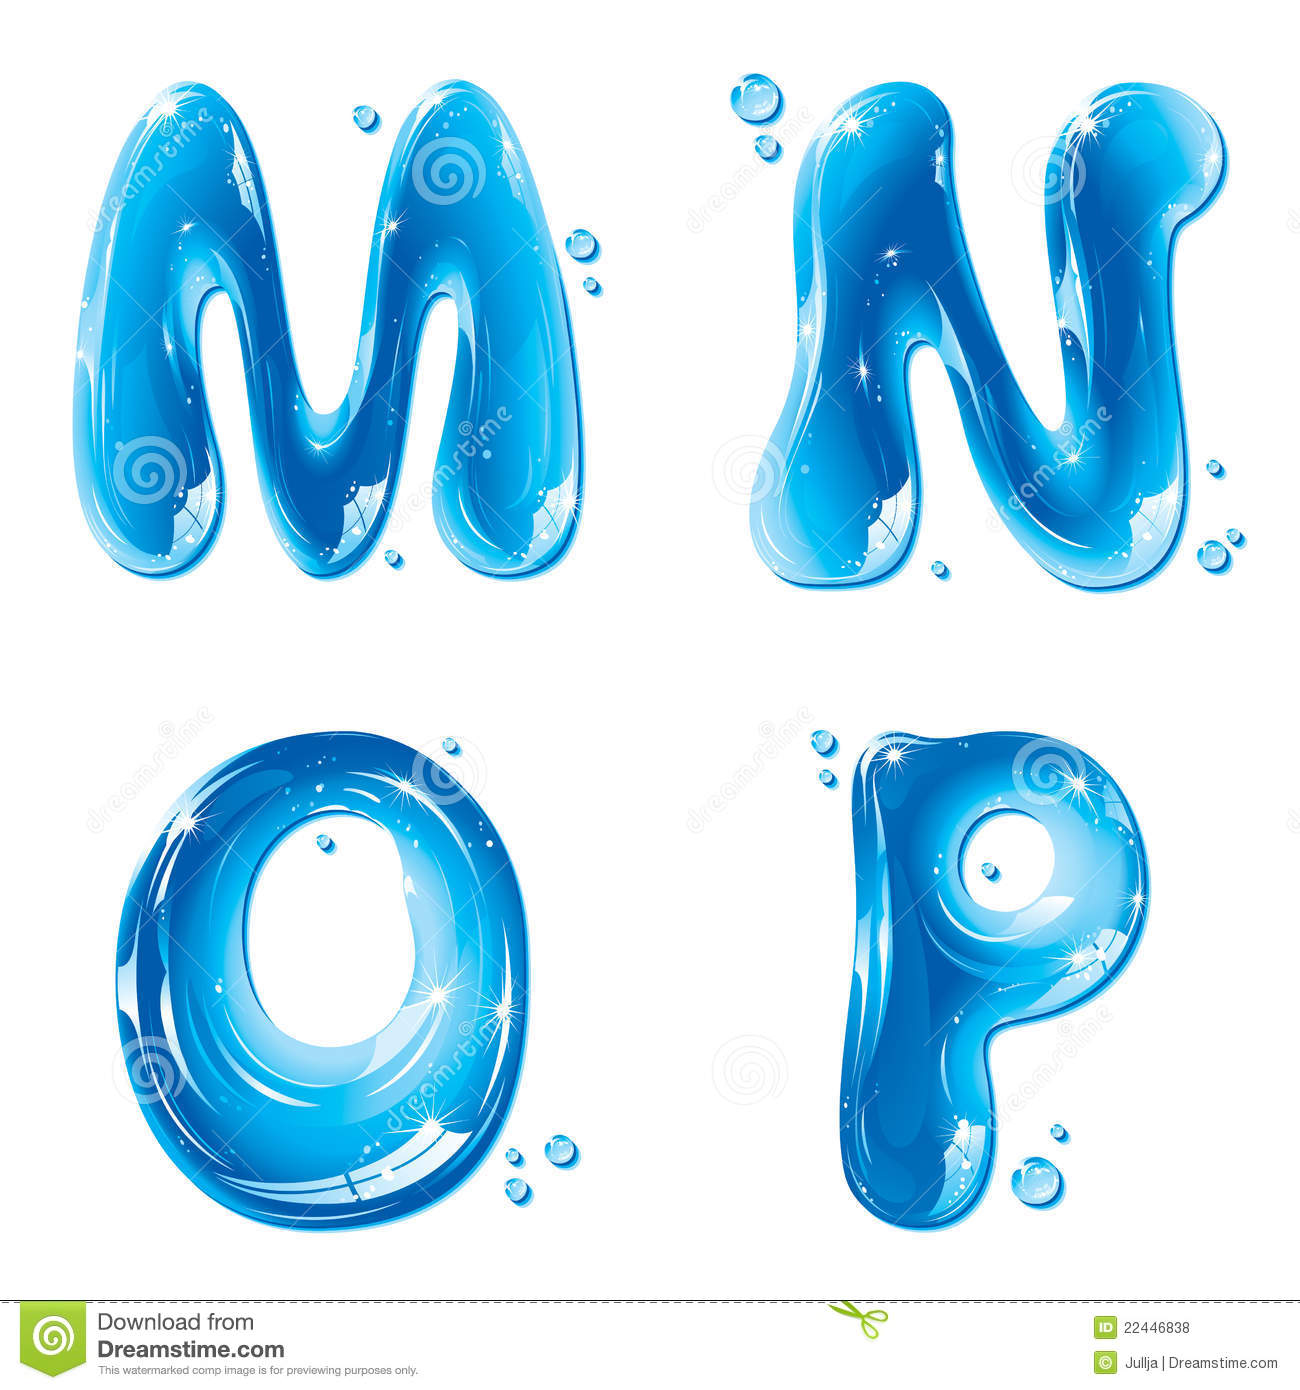 Free clipart water letters png royalty free download ABC - Water Liquid Letter Set - Capital M N O P Royalty Free Stock ... png royalty free download